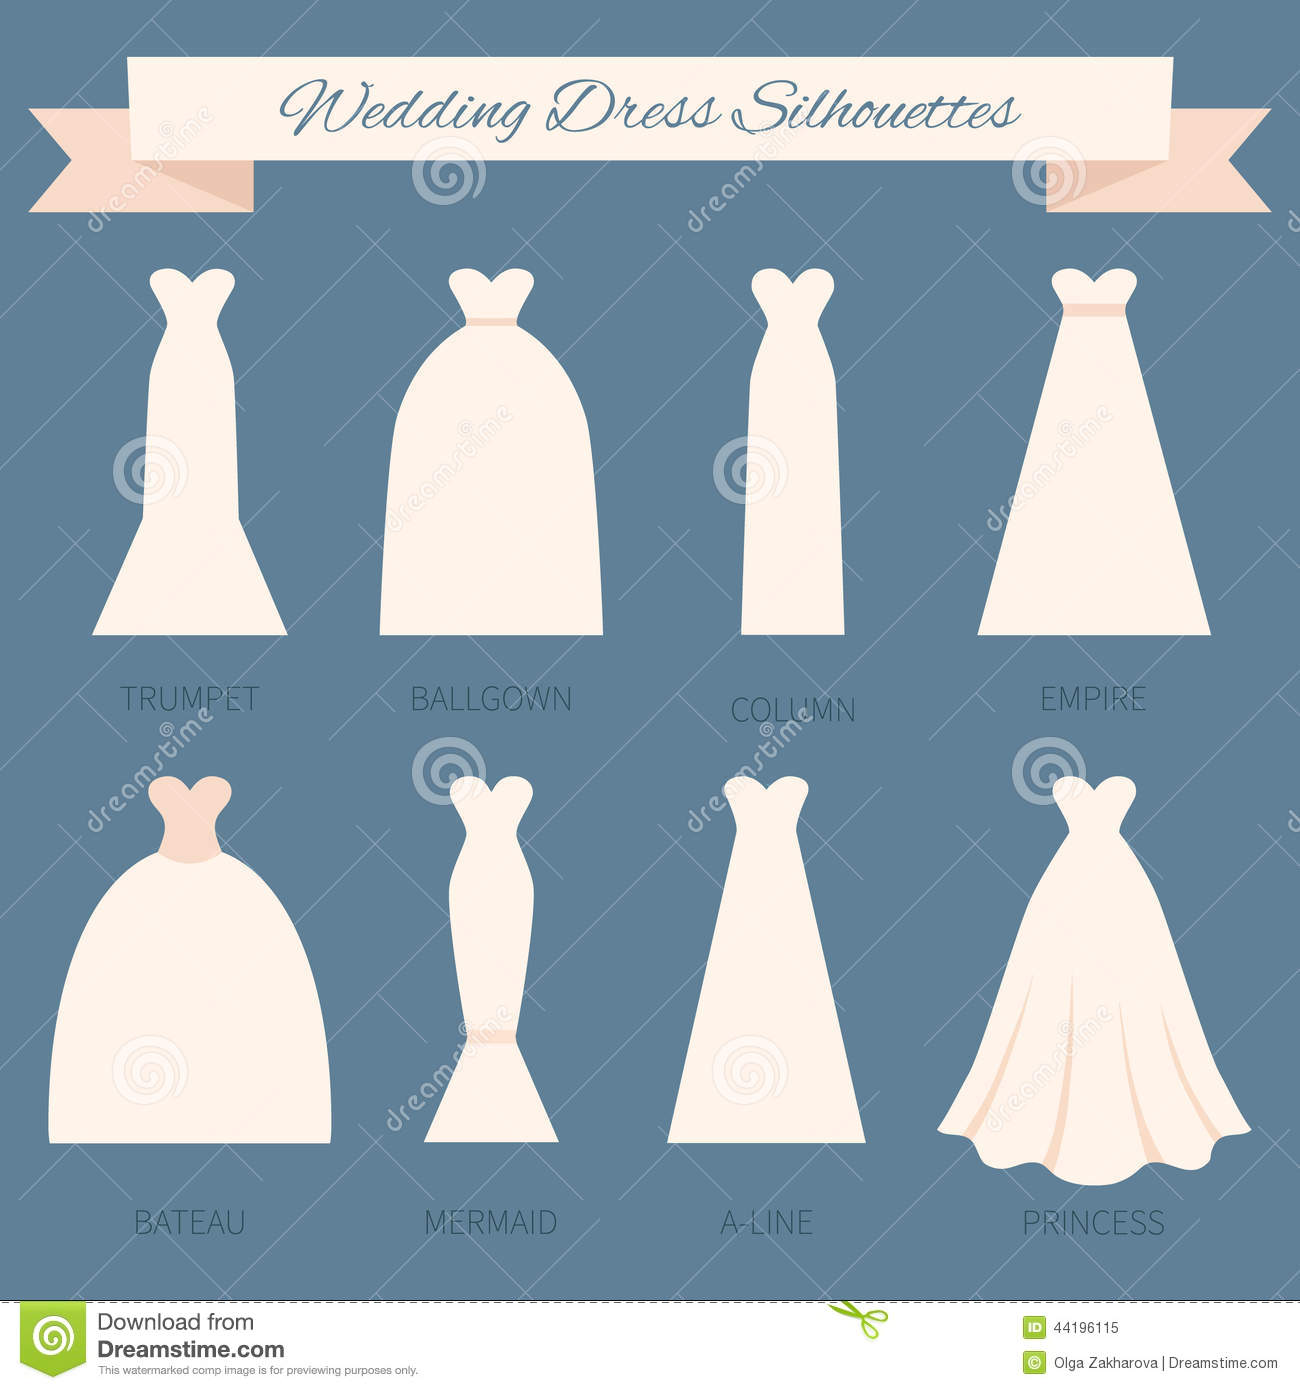 Wedding Dress Types: Travel Weddings And Honeymoons BlogHoney Ties